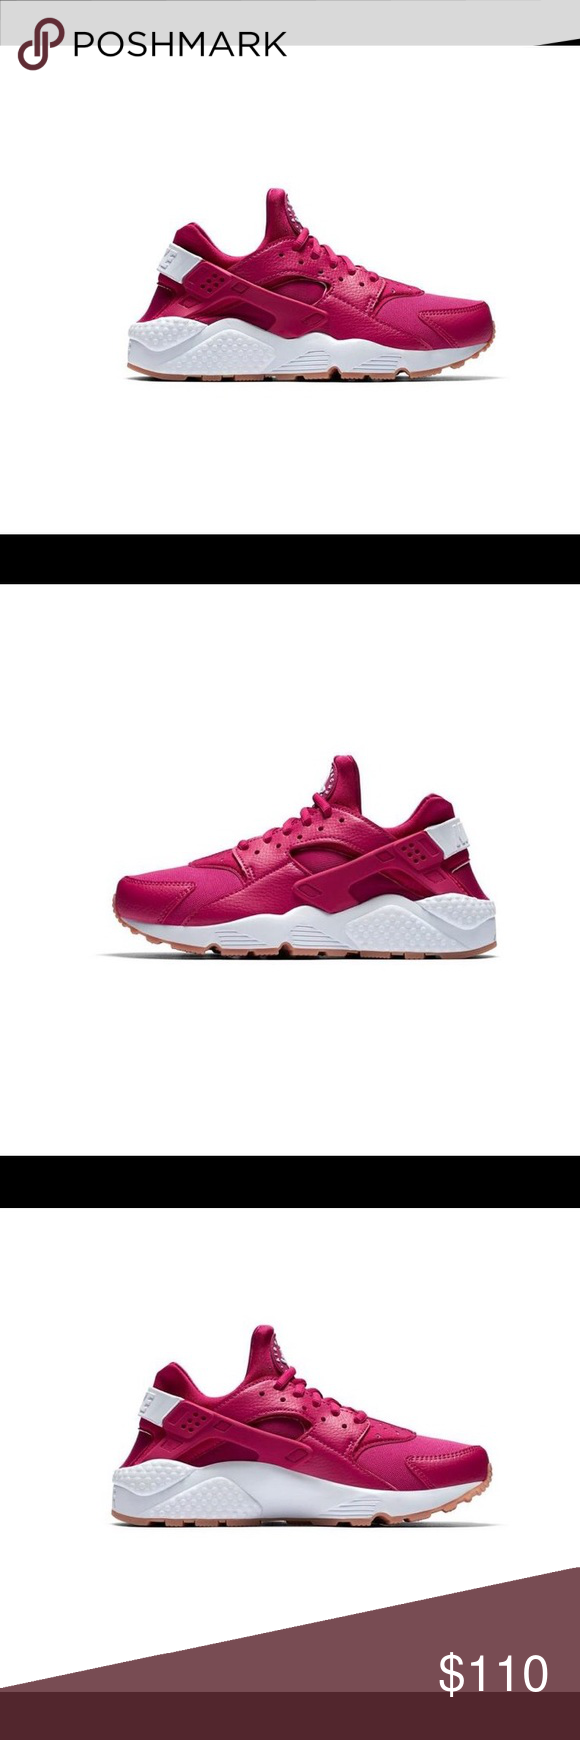 huge discount b4a8b 851d7 Nike air huarache run women s casual shoes Plum color. New in box. No  trades. Price firm STYLENME-NK Nike Shoes Sneakers